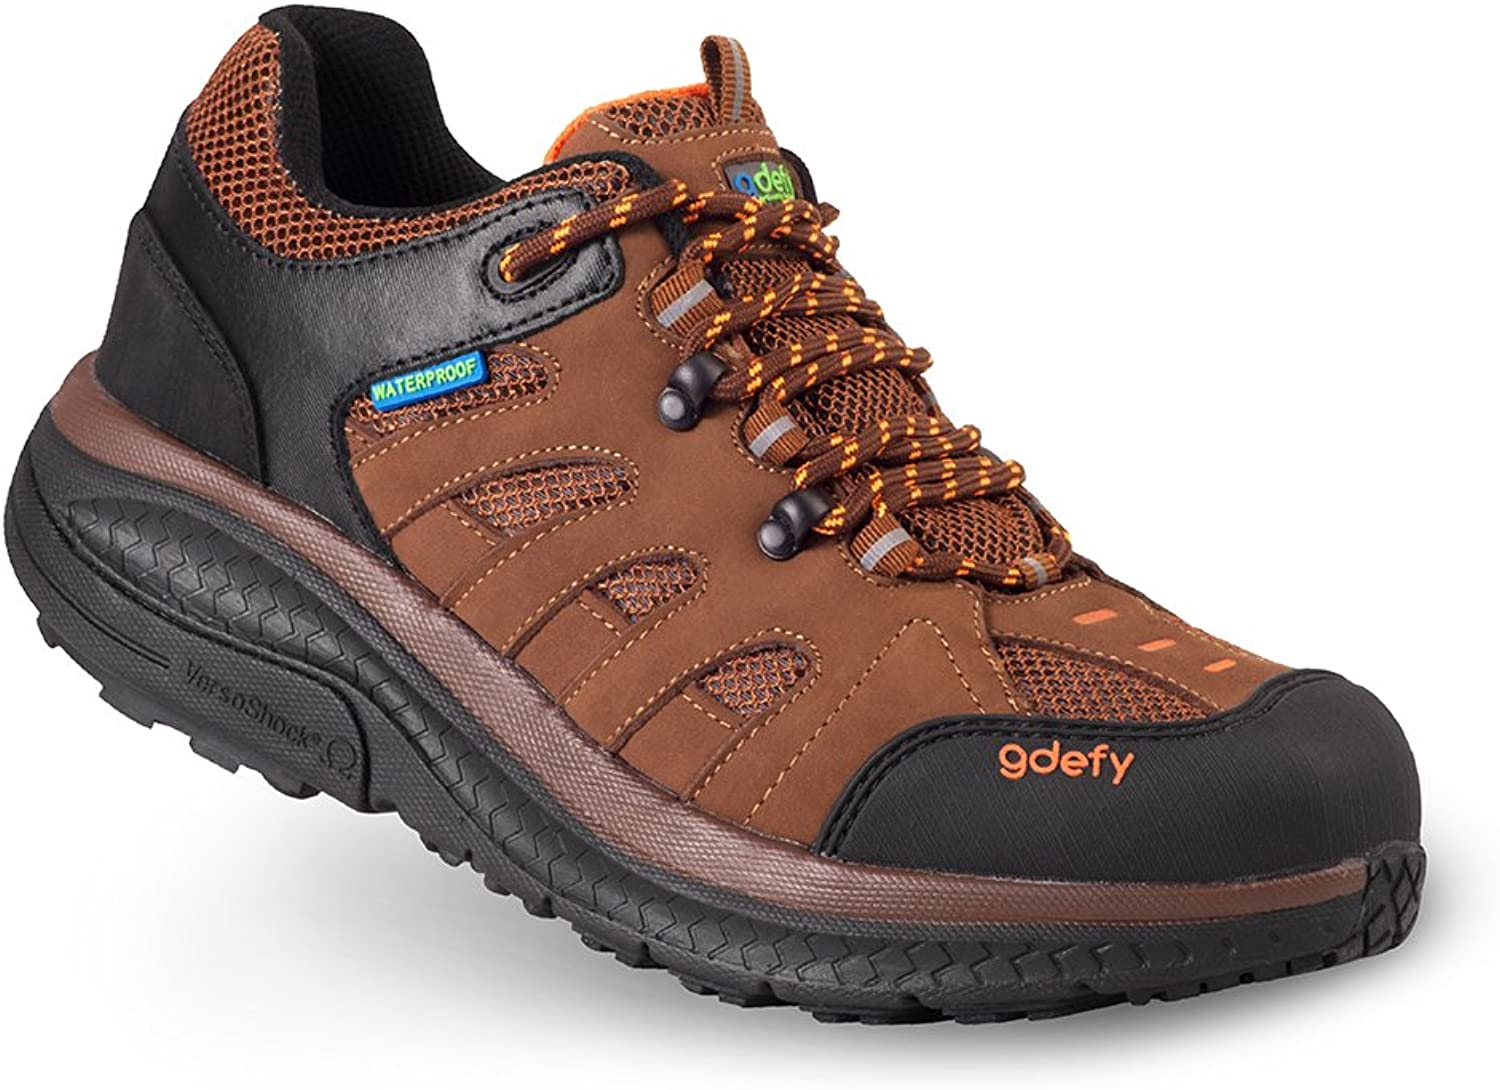 Men's G-Defy Stride Lane Clinically Proven Pain Relief Low Cut Hiking shoes